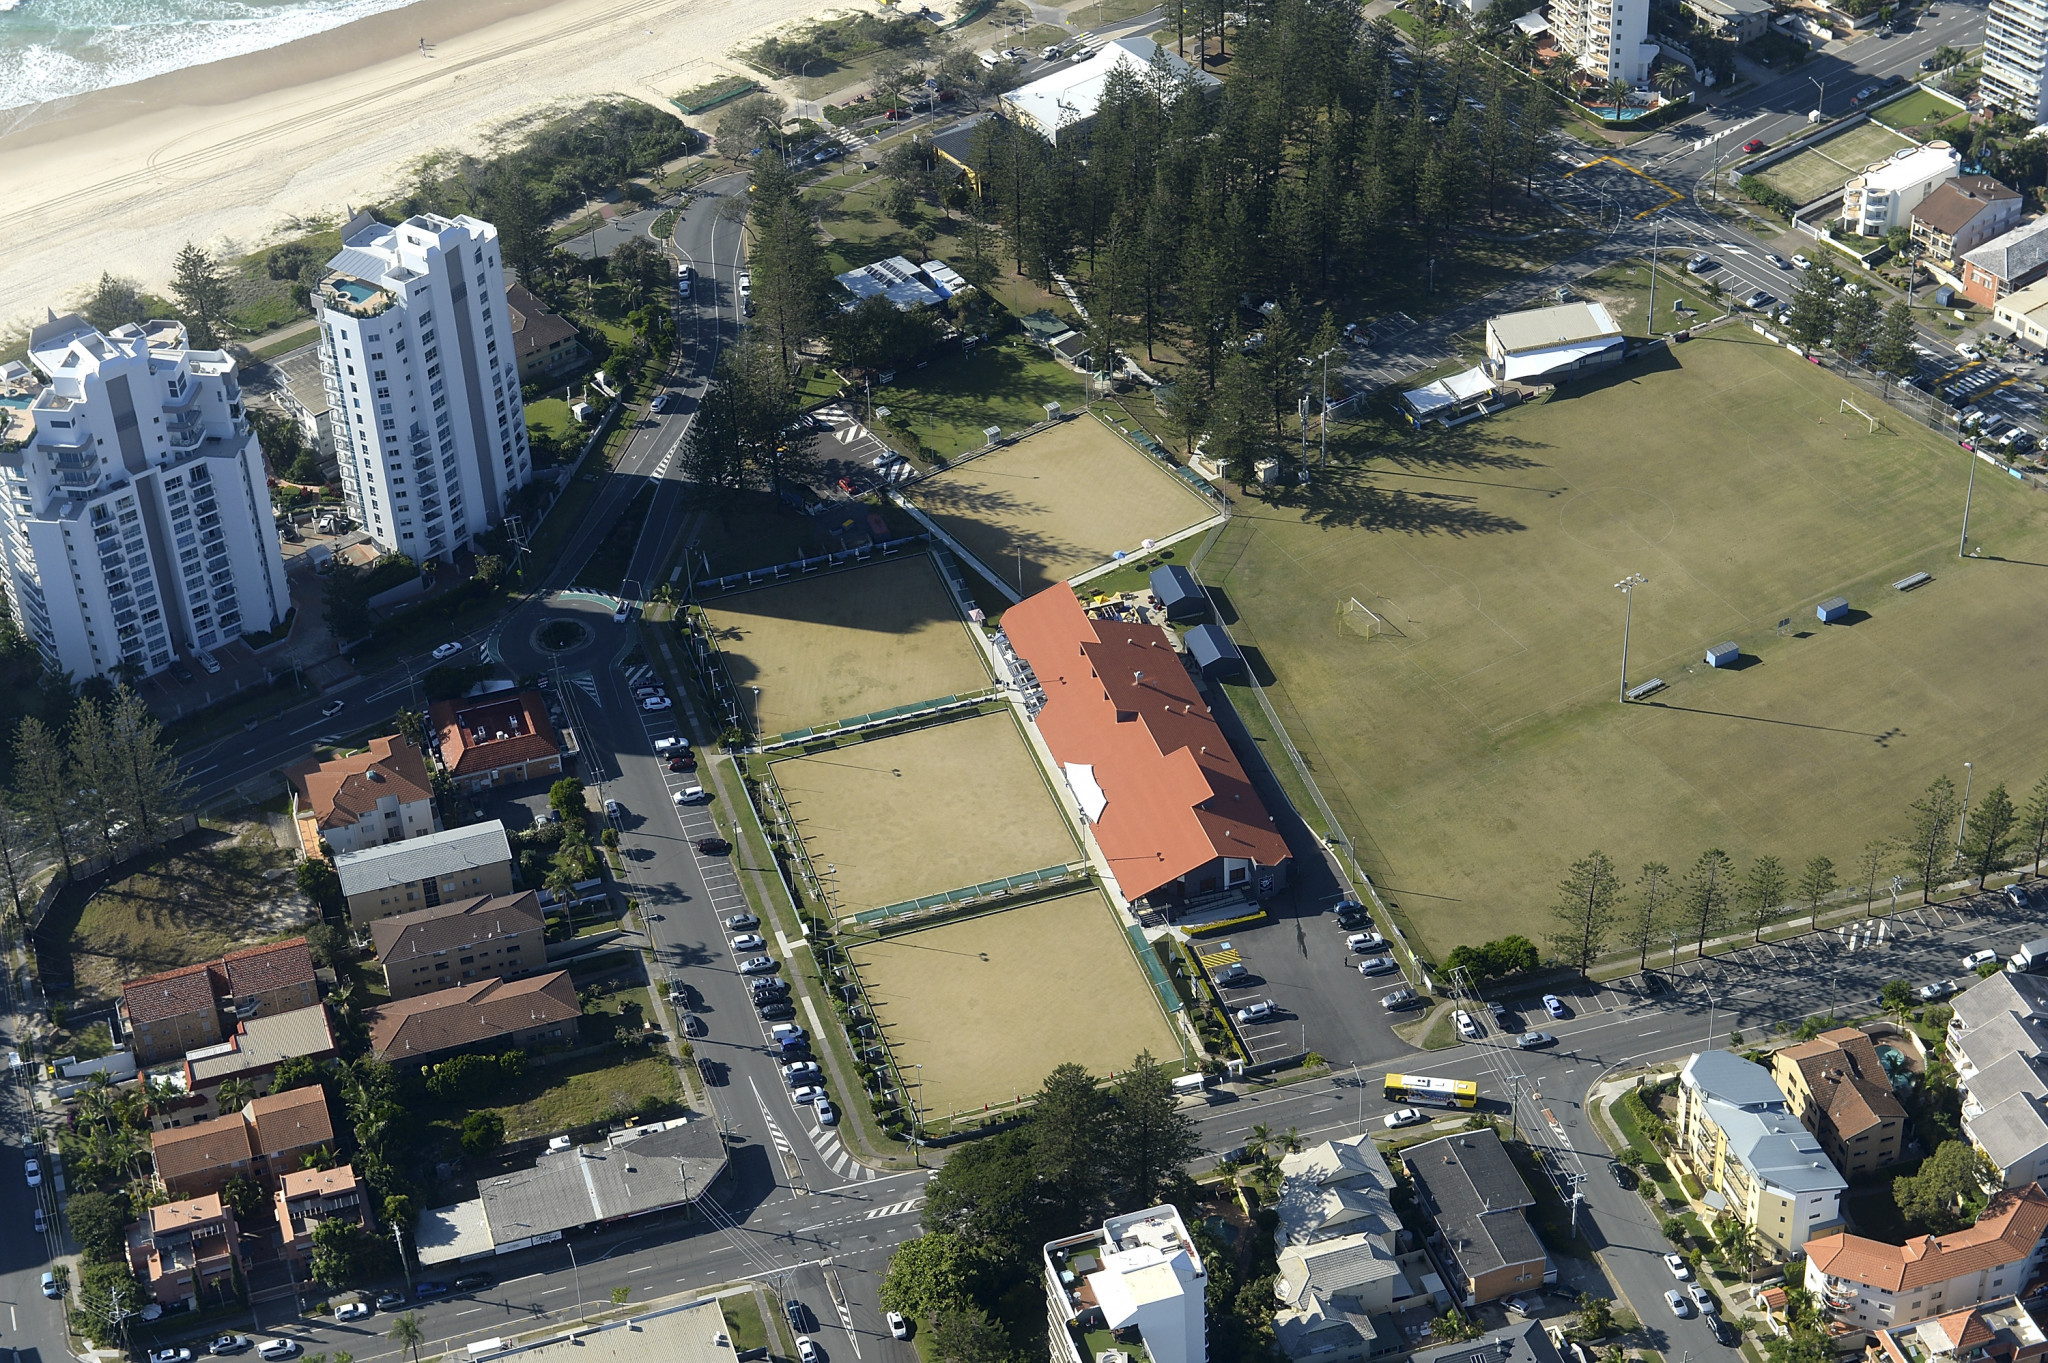 Broadbeach gears up for World Youth Bowls Championships